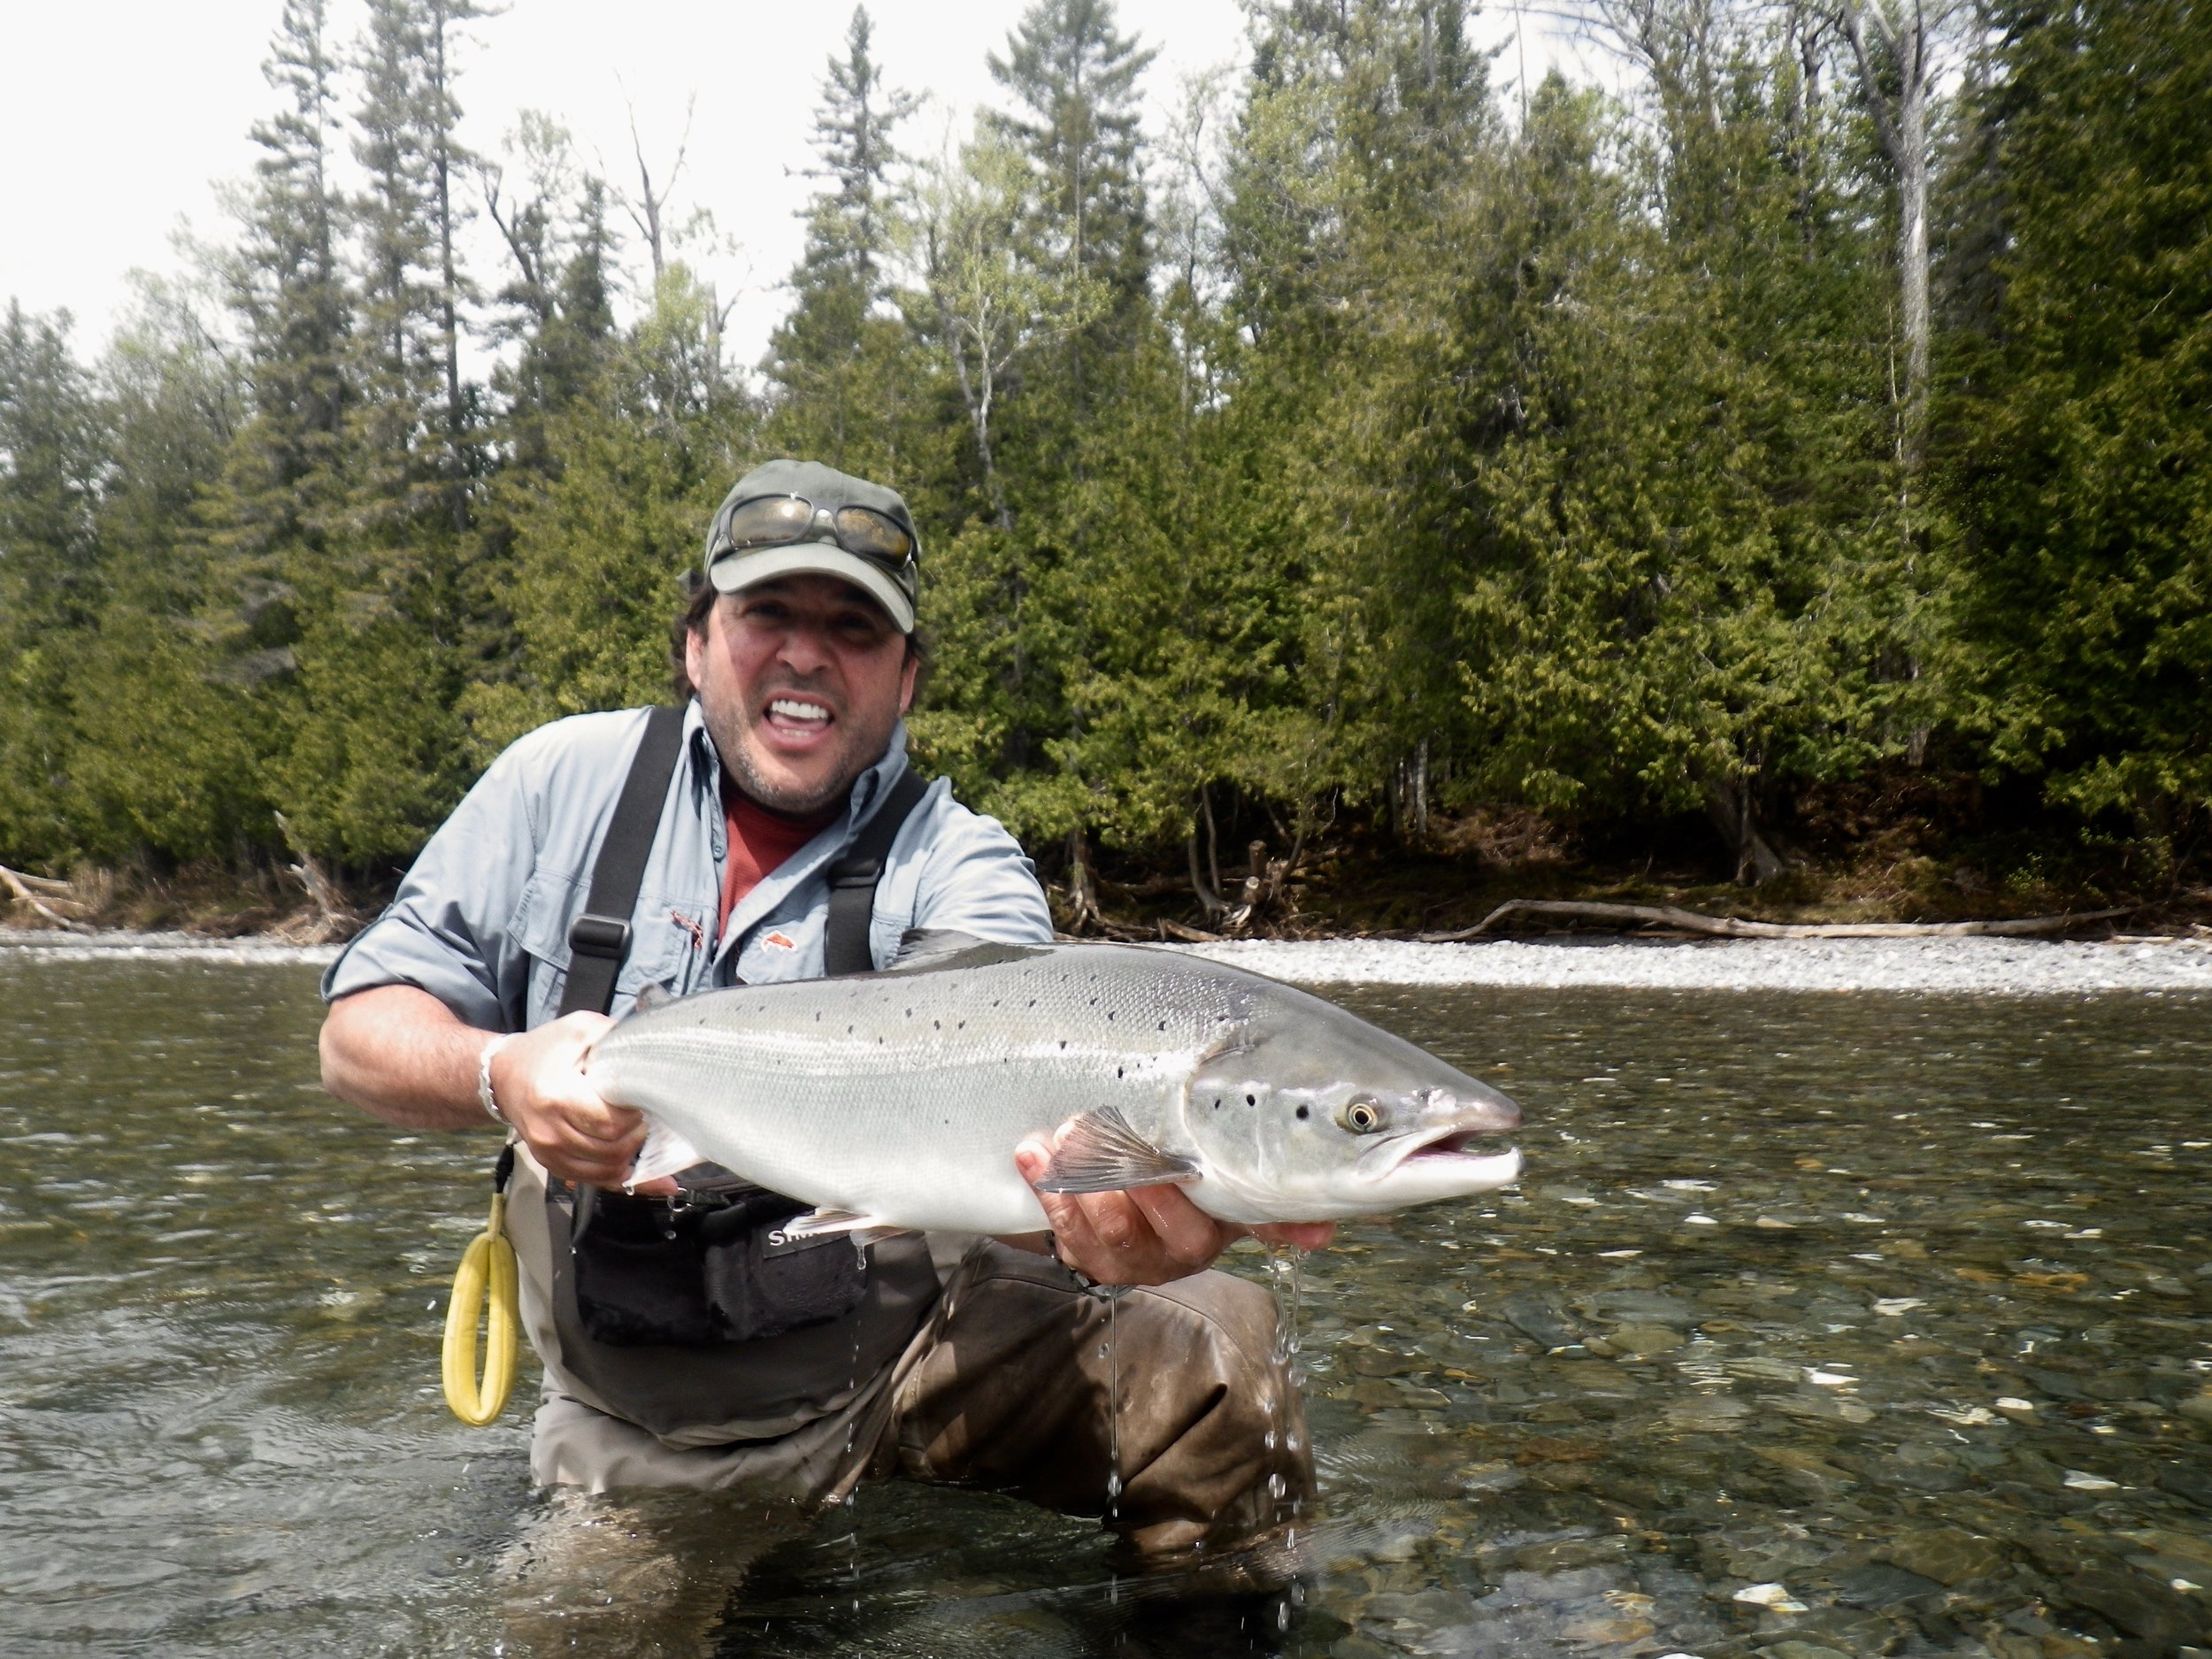 Joe Colette with a nie early season salmon,  congratulations  Joe!